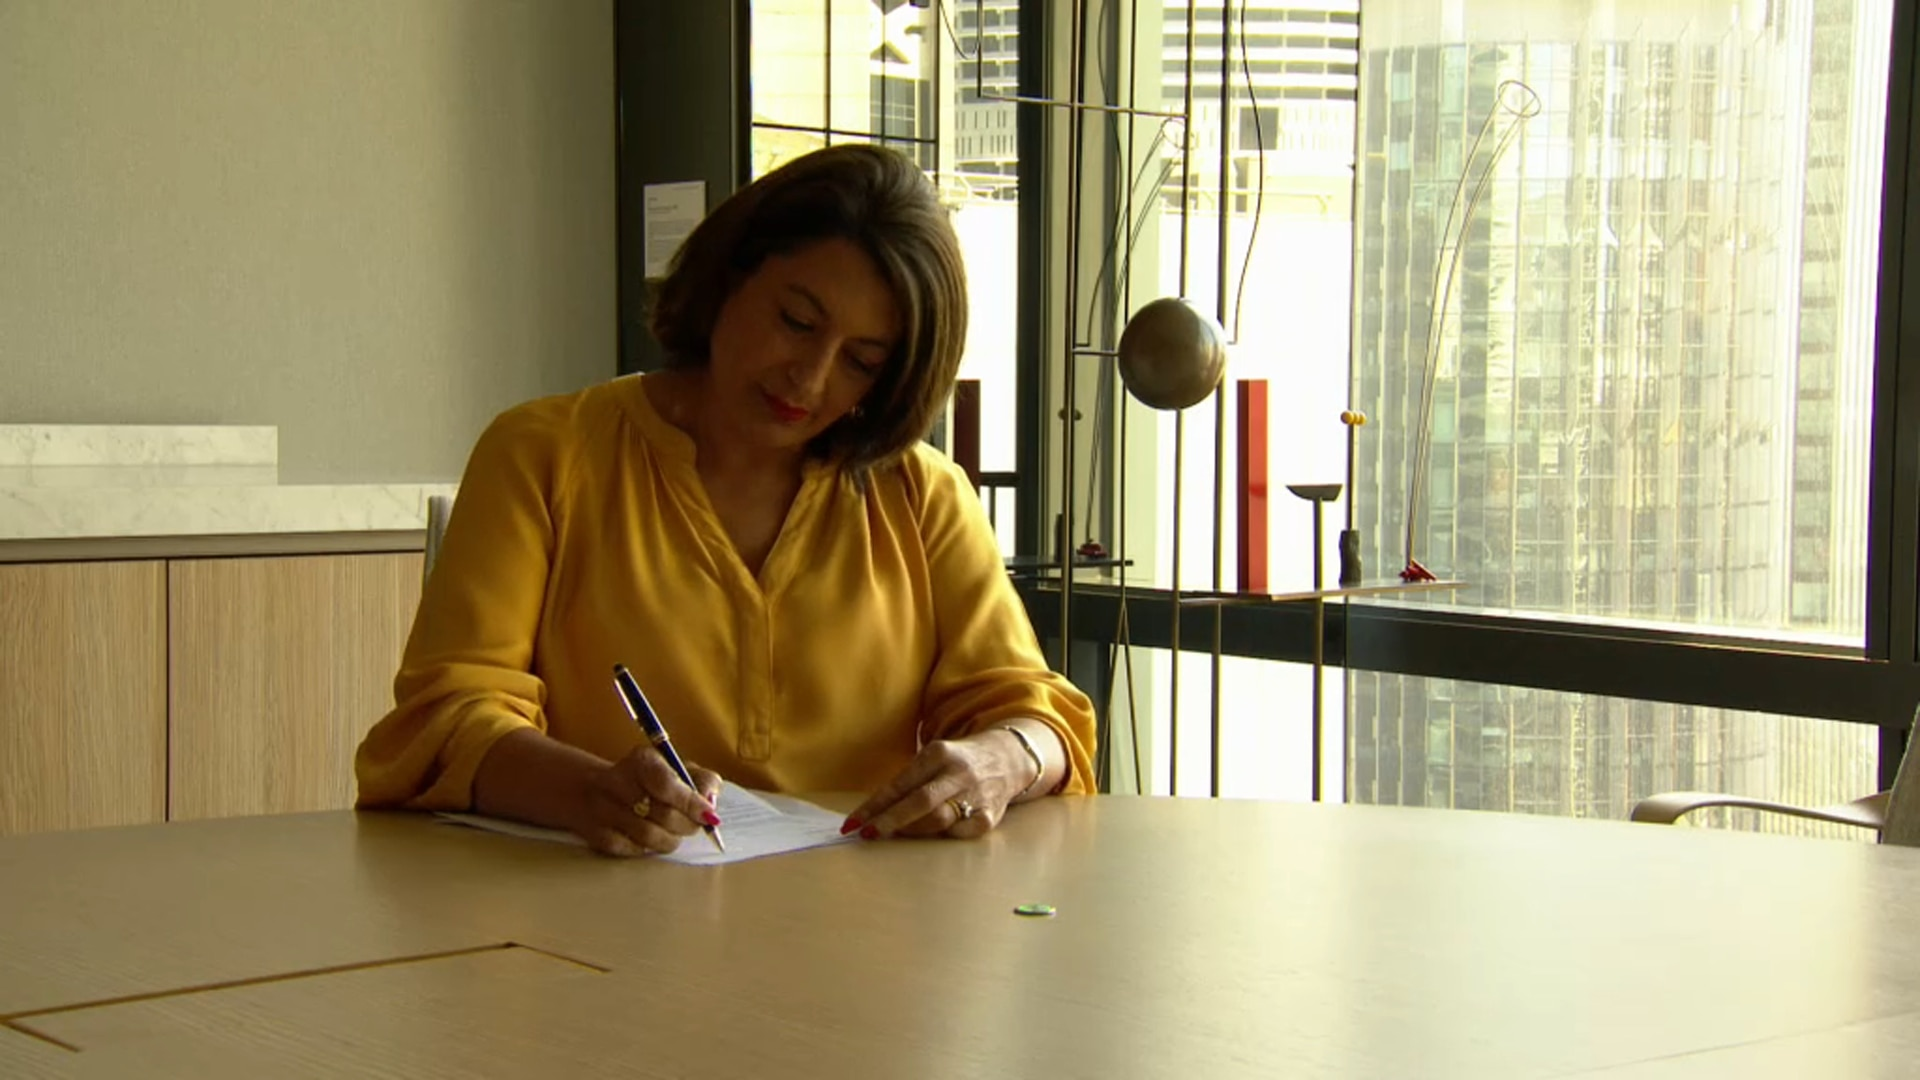 Westpac's Group Head for Inclusion and Diversity, Sandra Casinader